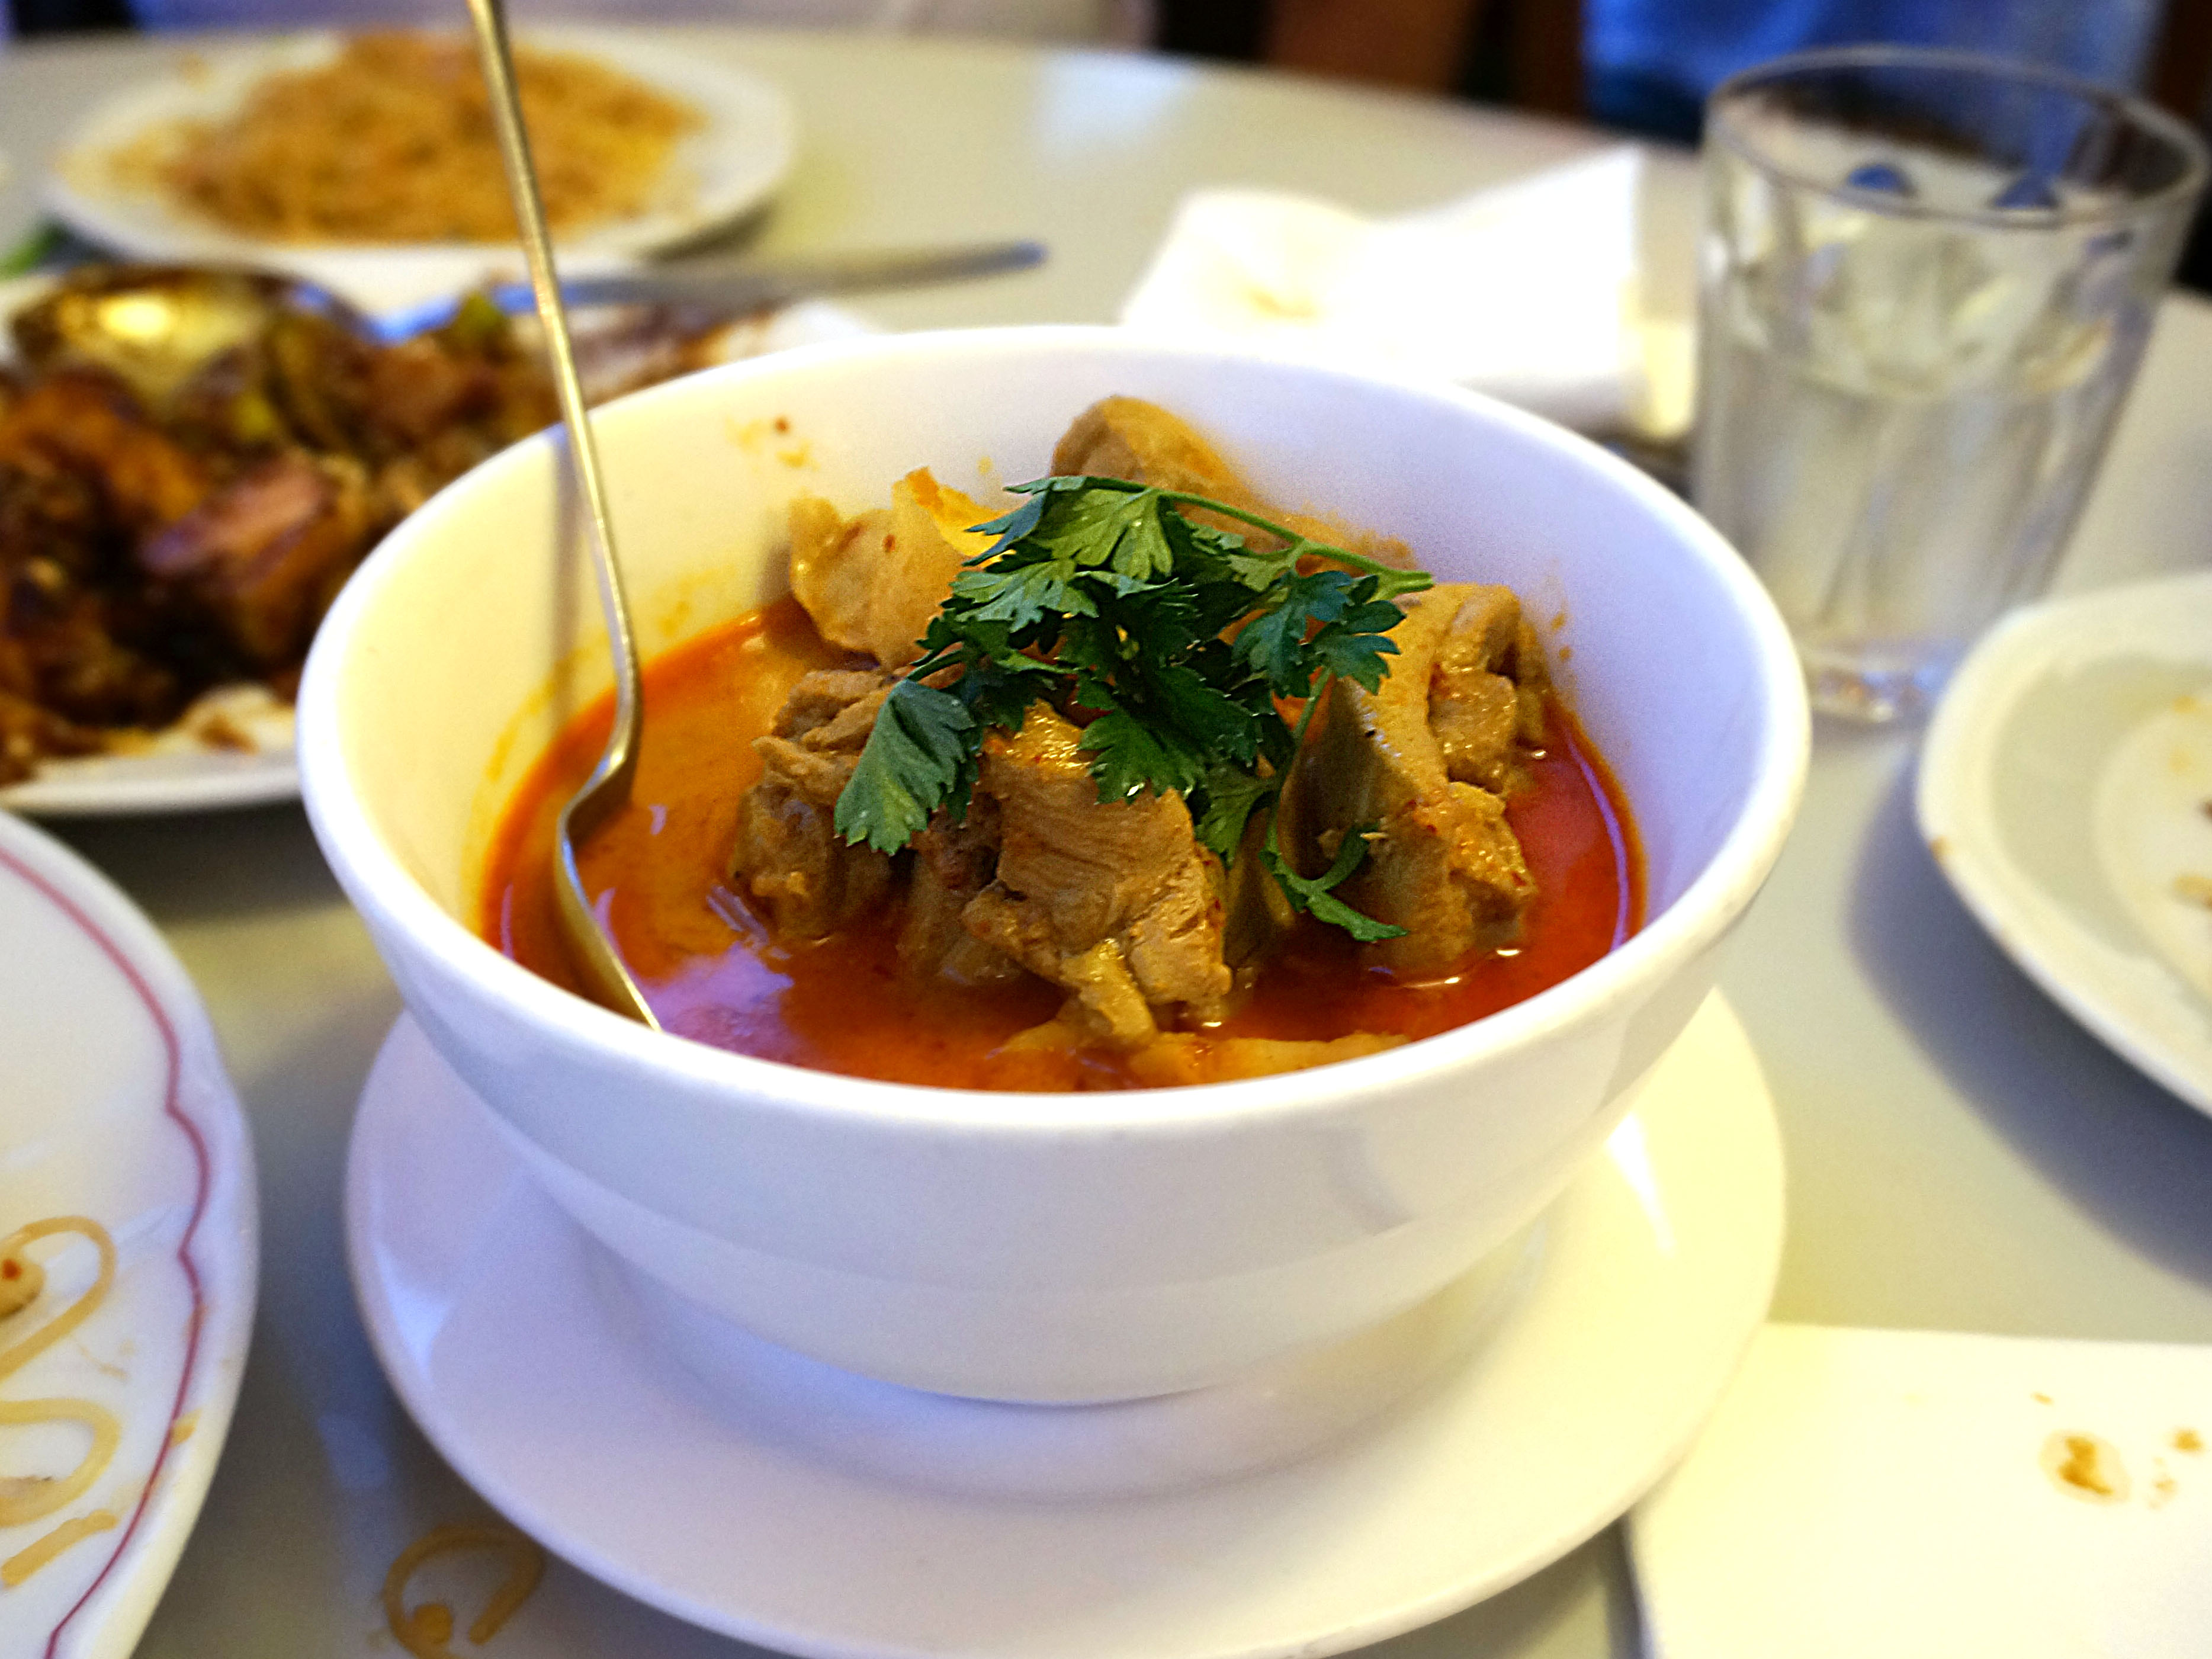 Old Colonial Chicken Curry - 'Boneless chicken meat cooked with traditional curry spices & potatoes'